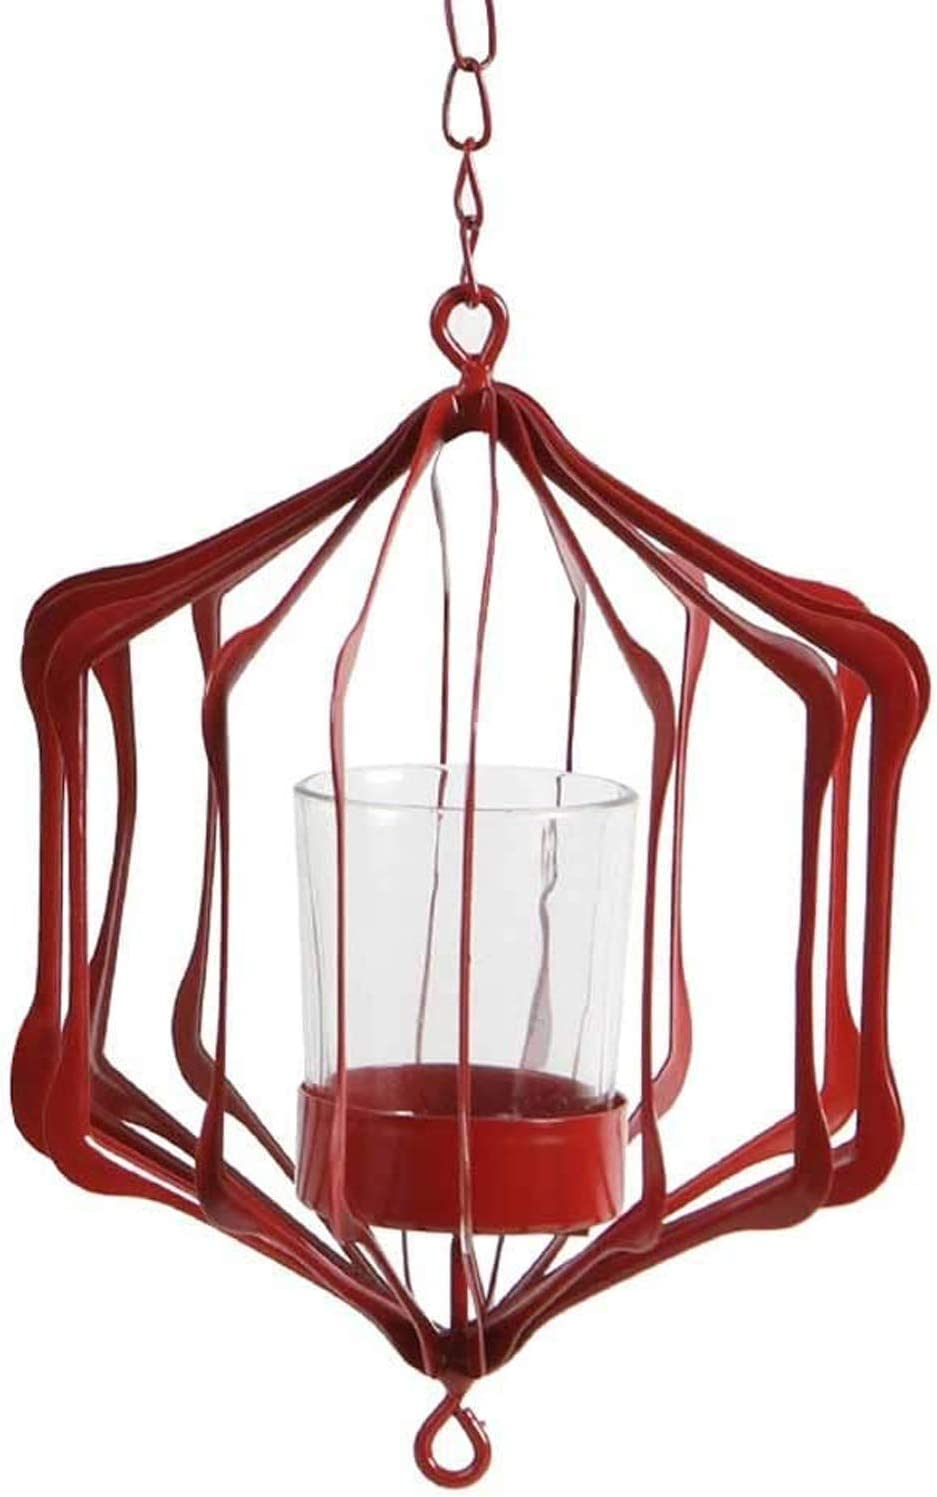 Brand Cheap Sale Venue Siunwdiy Modern Minimalist Wrought Candl Indianapolis Mall Hanging Chandelier Iron